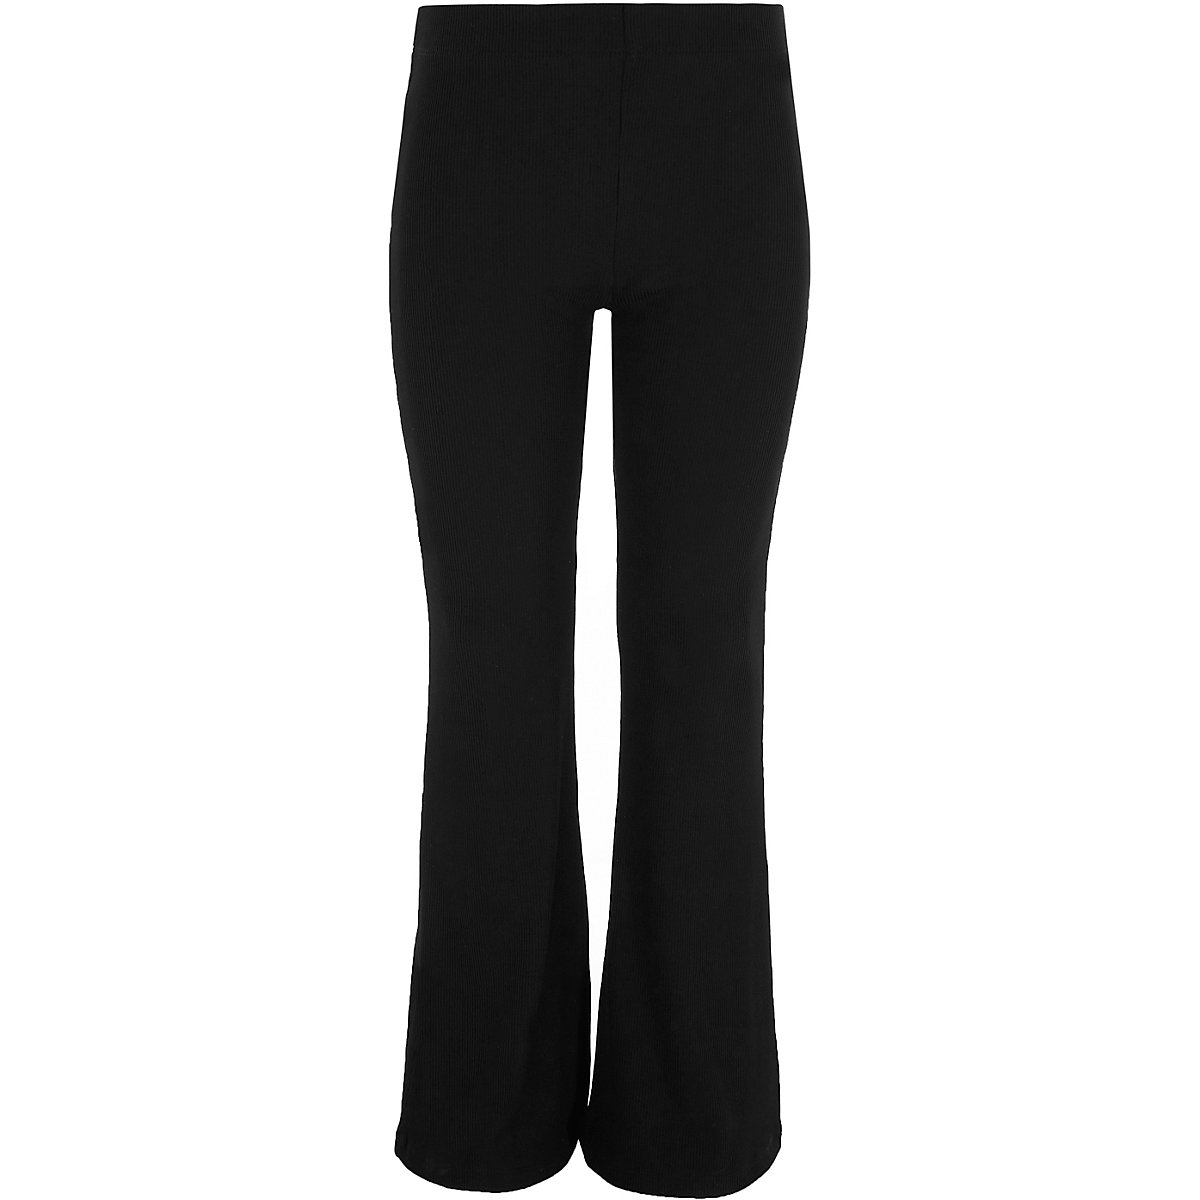 Girls black flared ribbed leggings